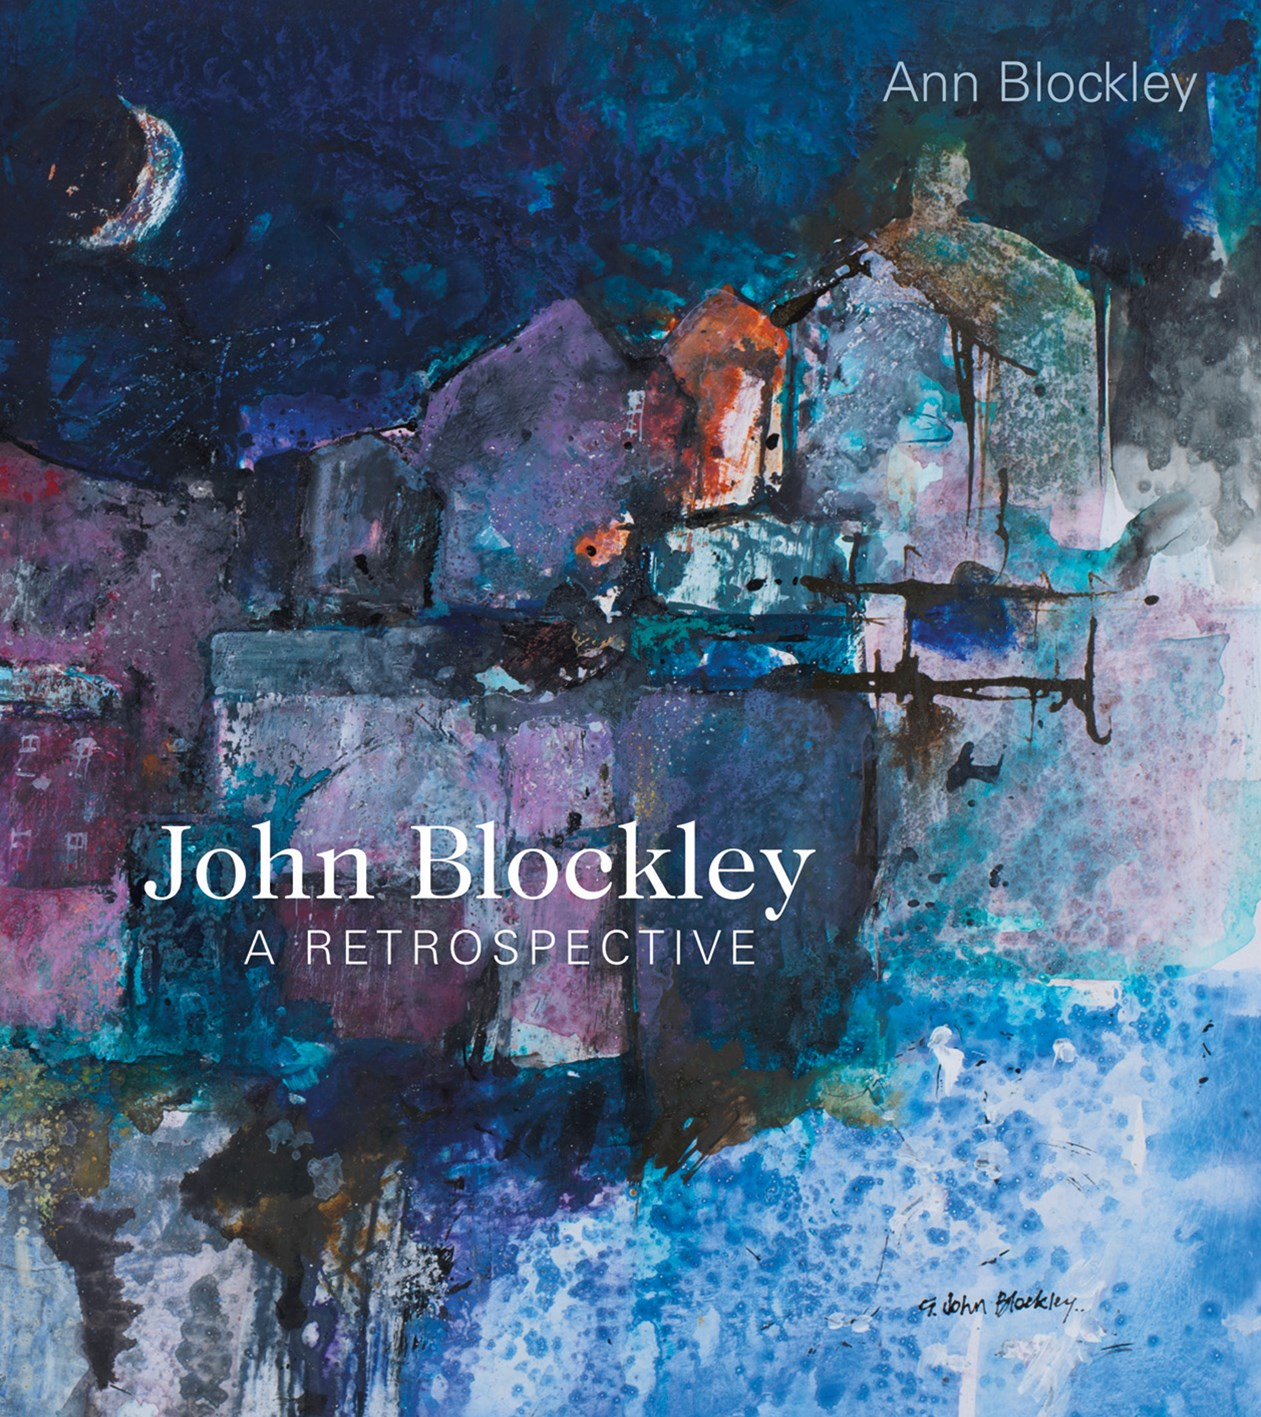 G. John Blockley: A Retrospective